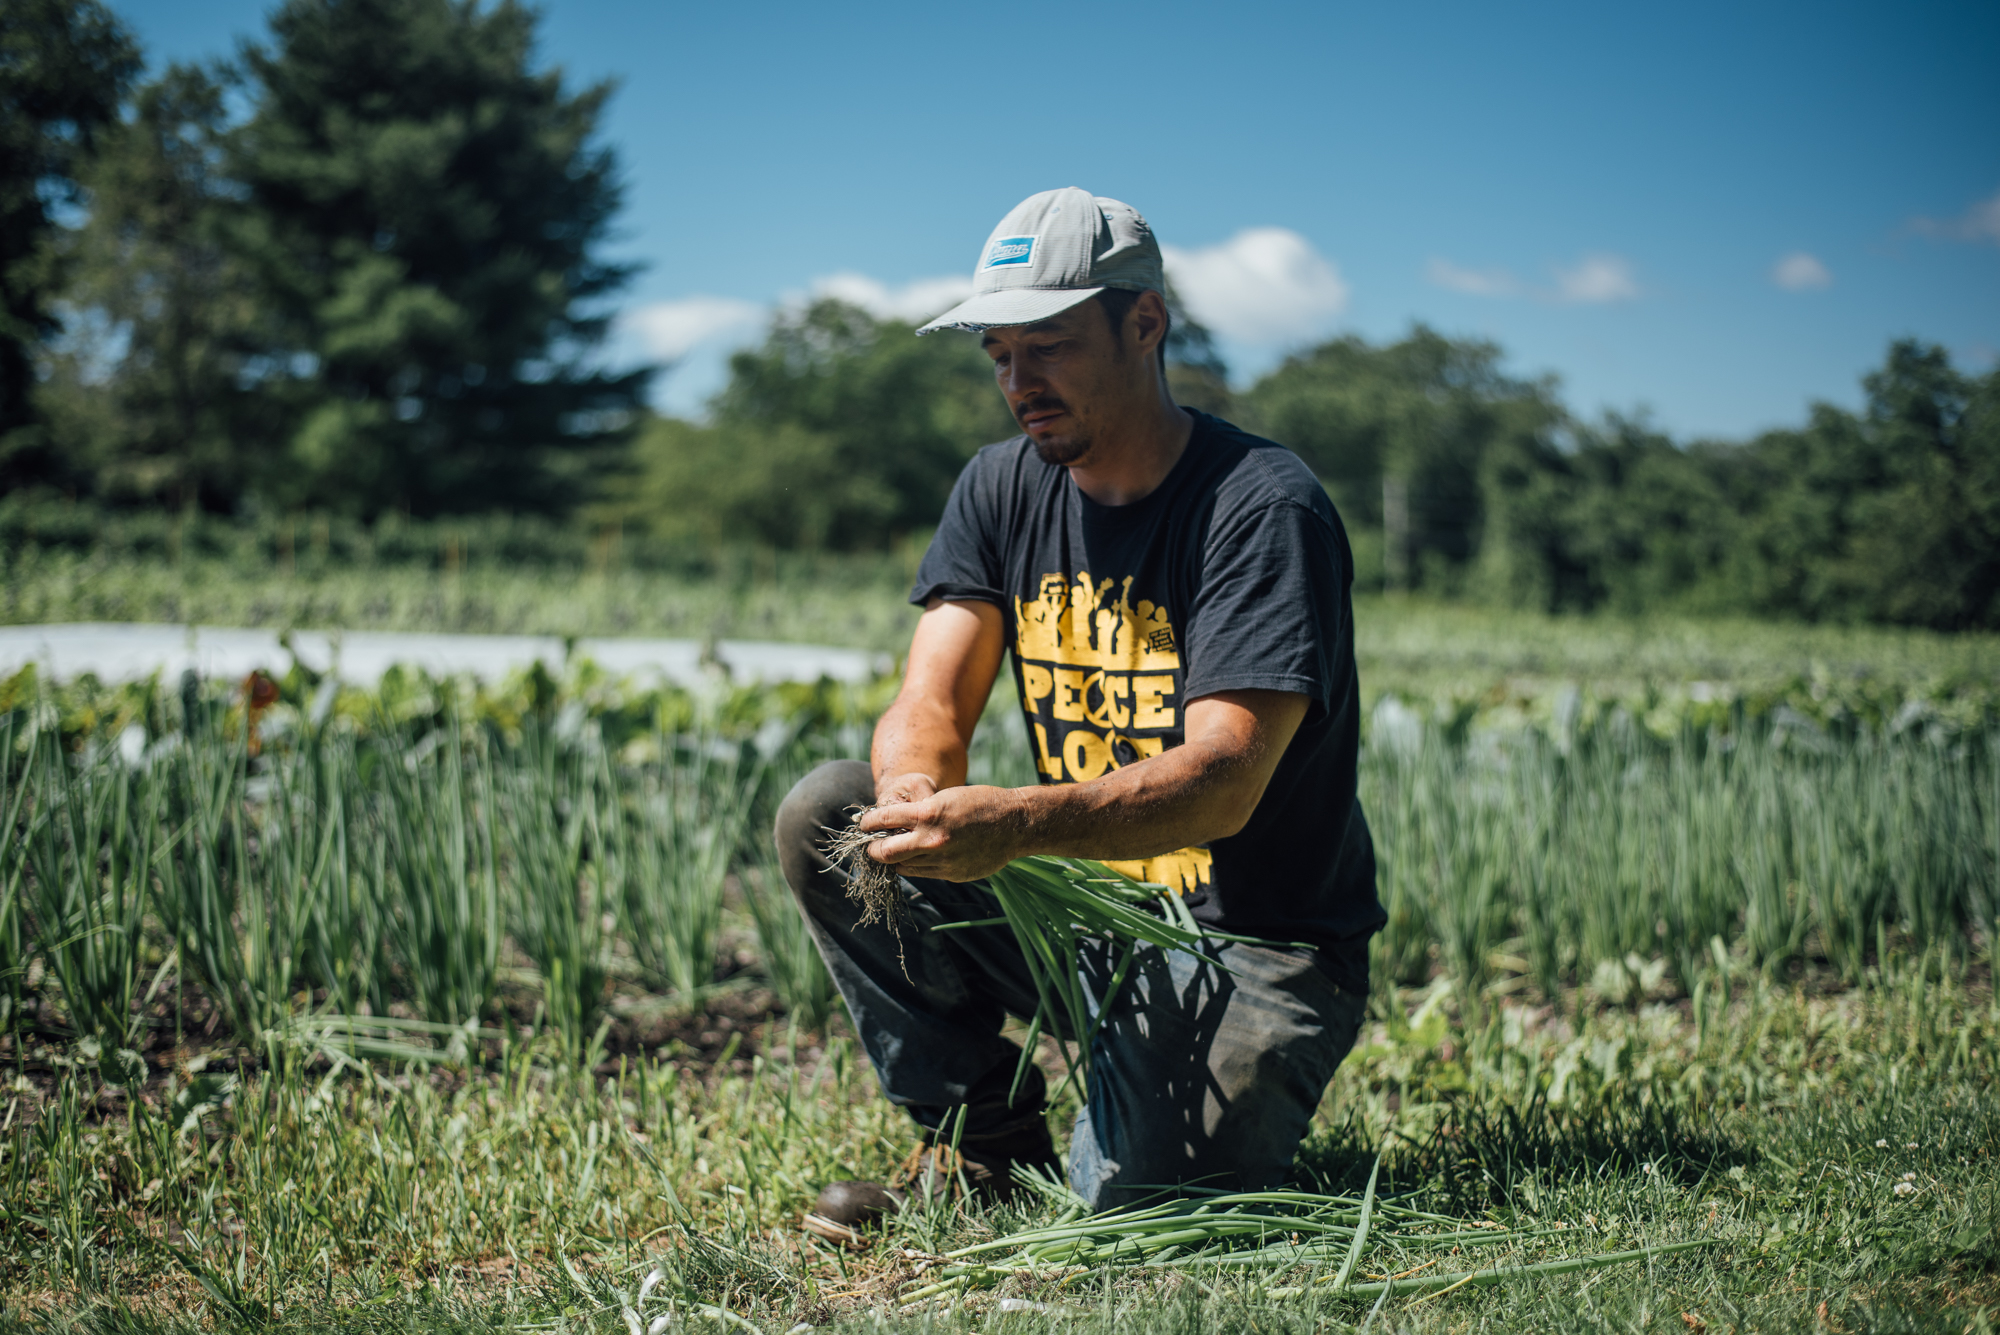 Kohei Ishihara is the owner of Movement Ground Farm. The seven-acre farm is located on the coast of Rhode Island. He wants to start a program on the farm where elder refugees can work alongside the next generation. Photo by Ash Ngu.